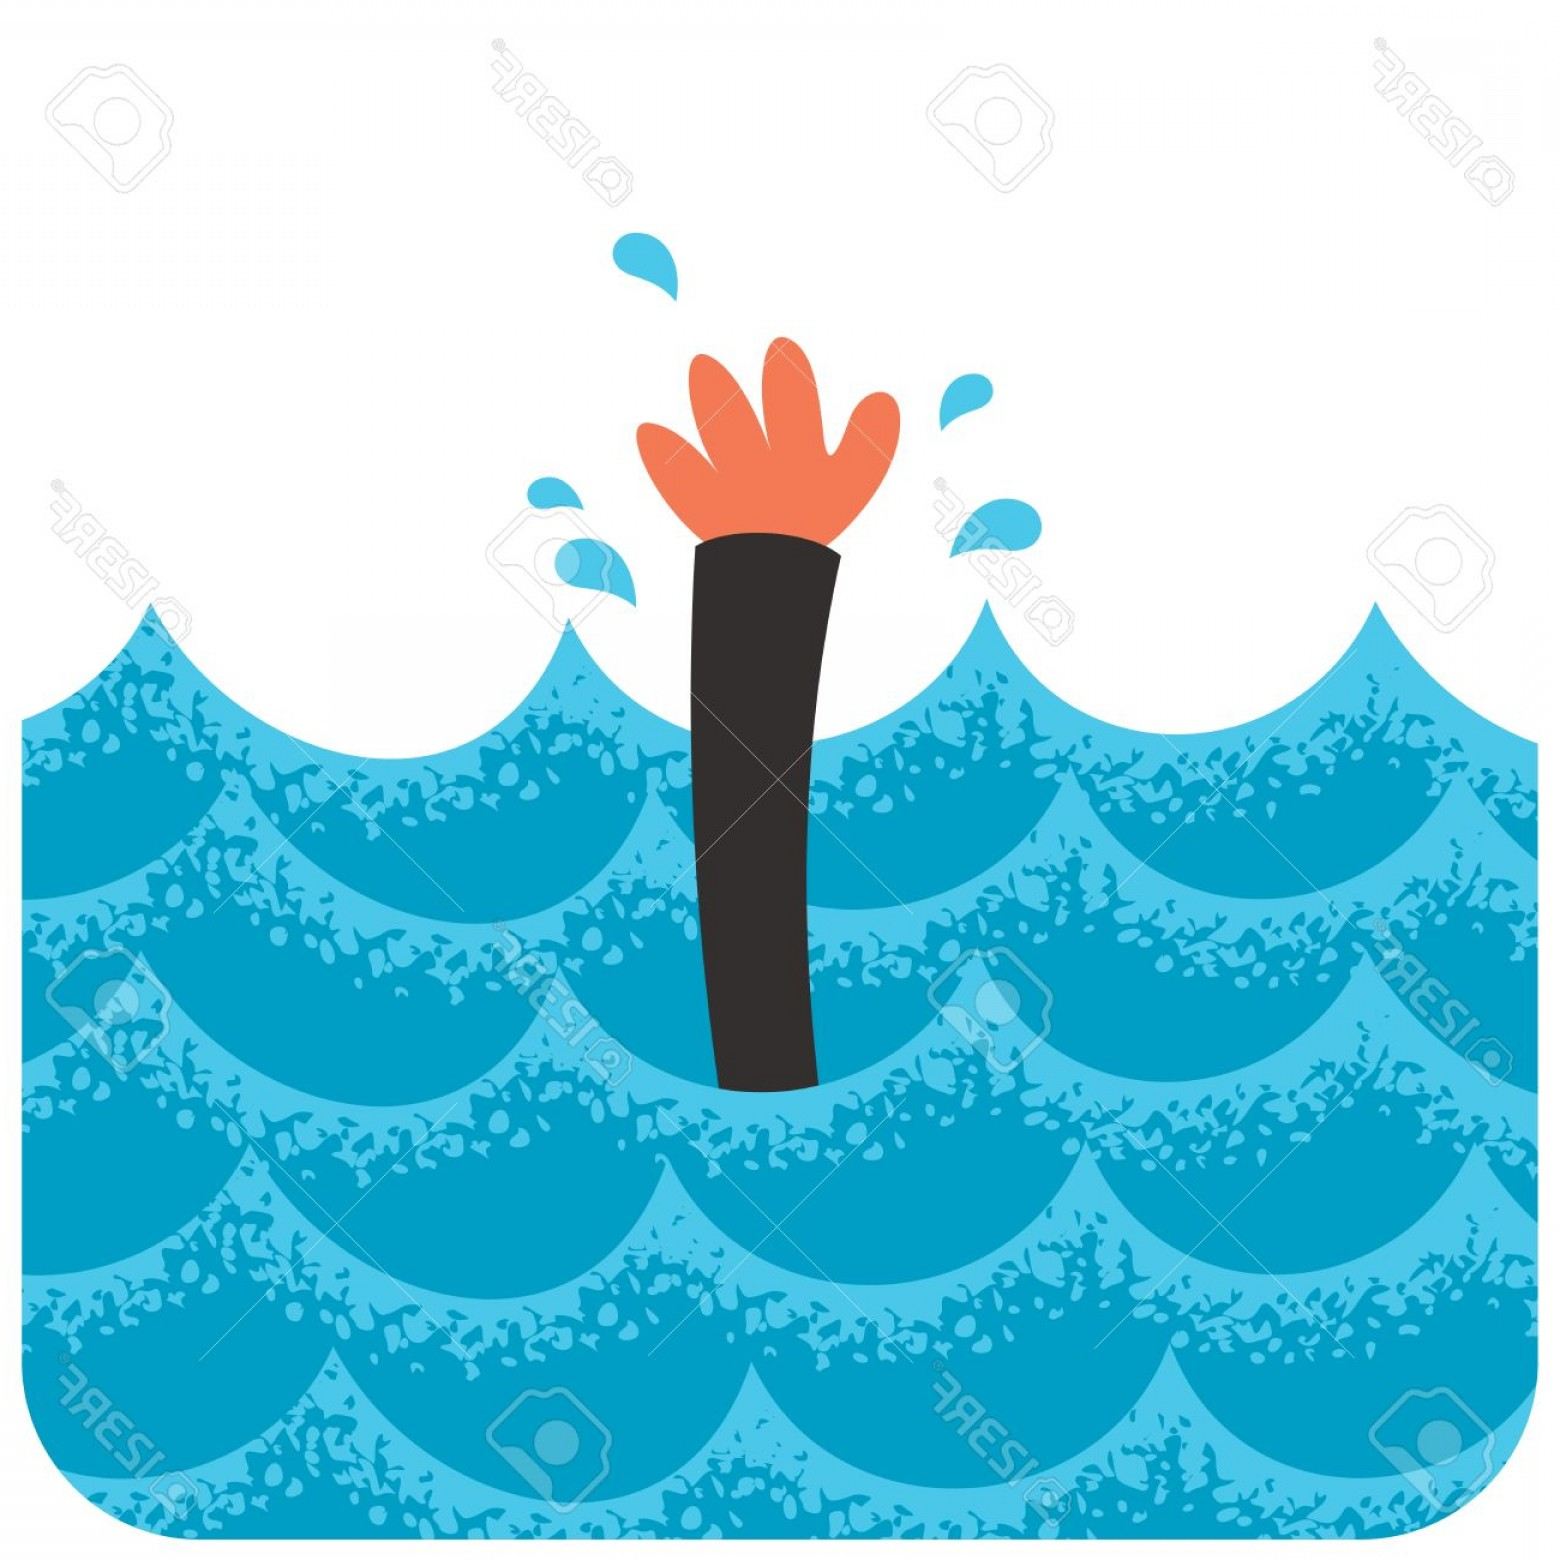 Man Drowning Vector: Photostock Vector Cartoon Illustration Of Drowning Man